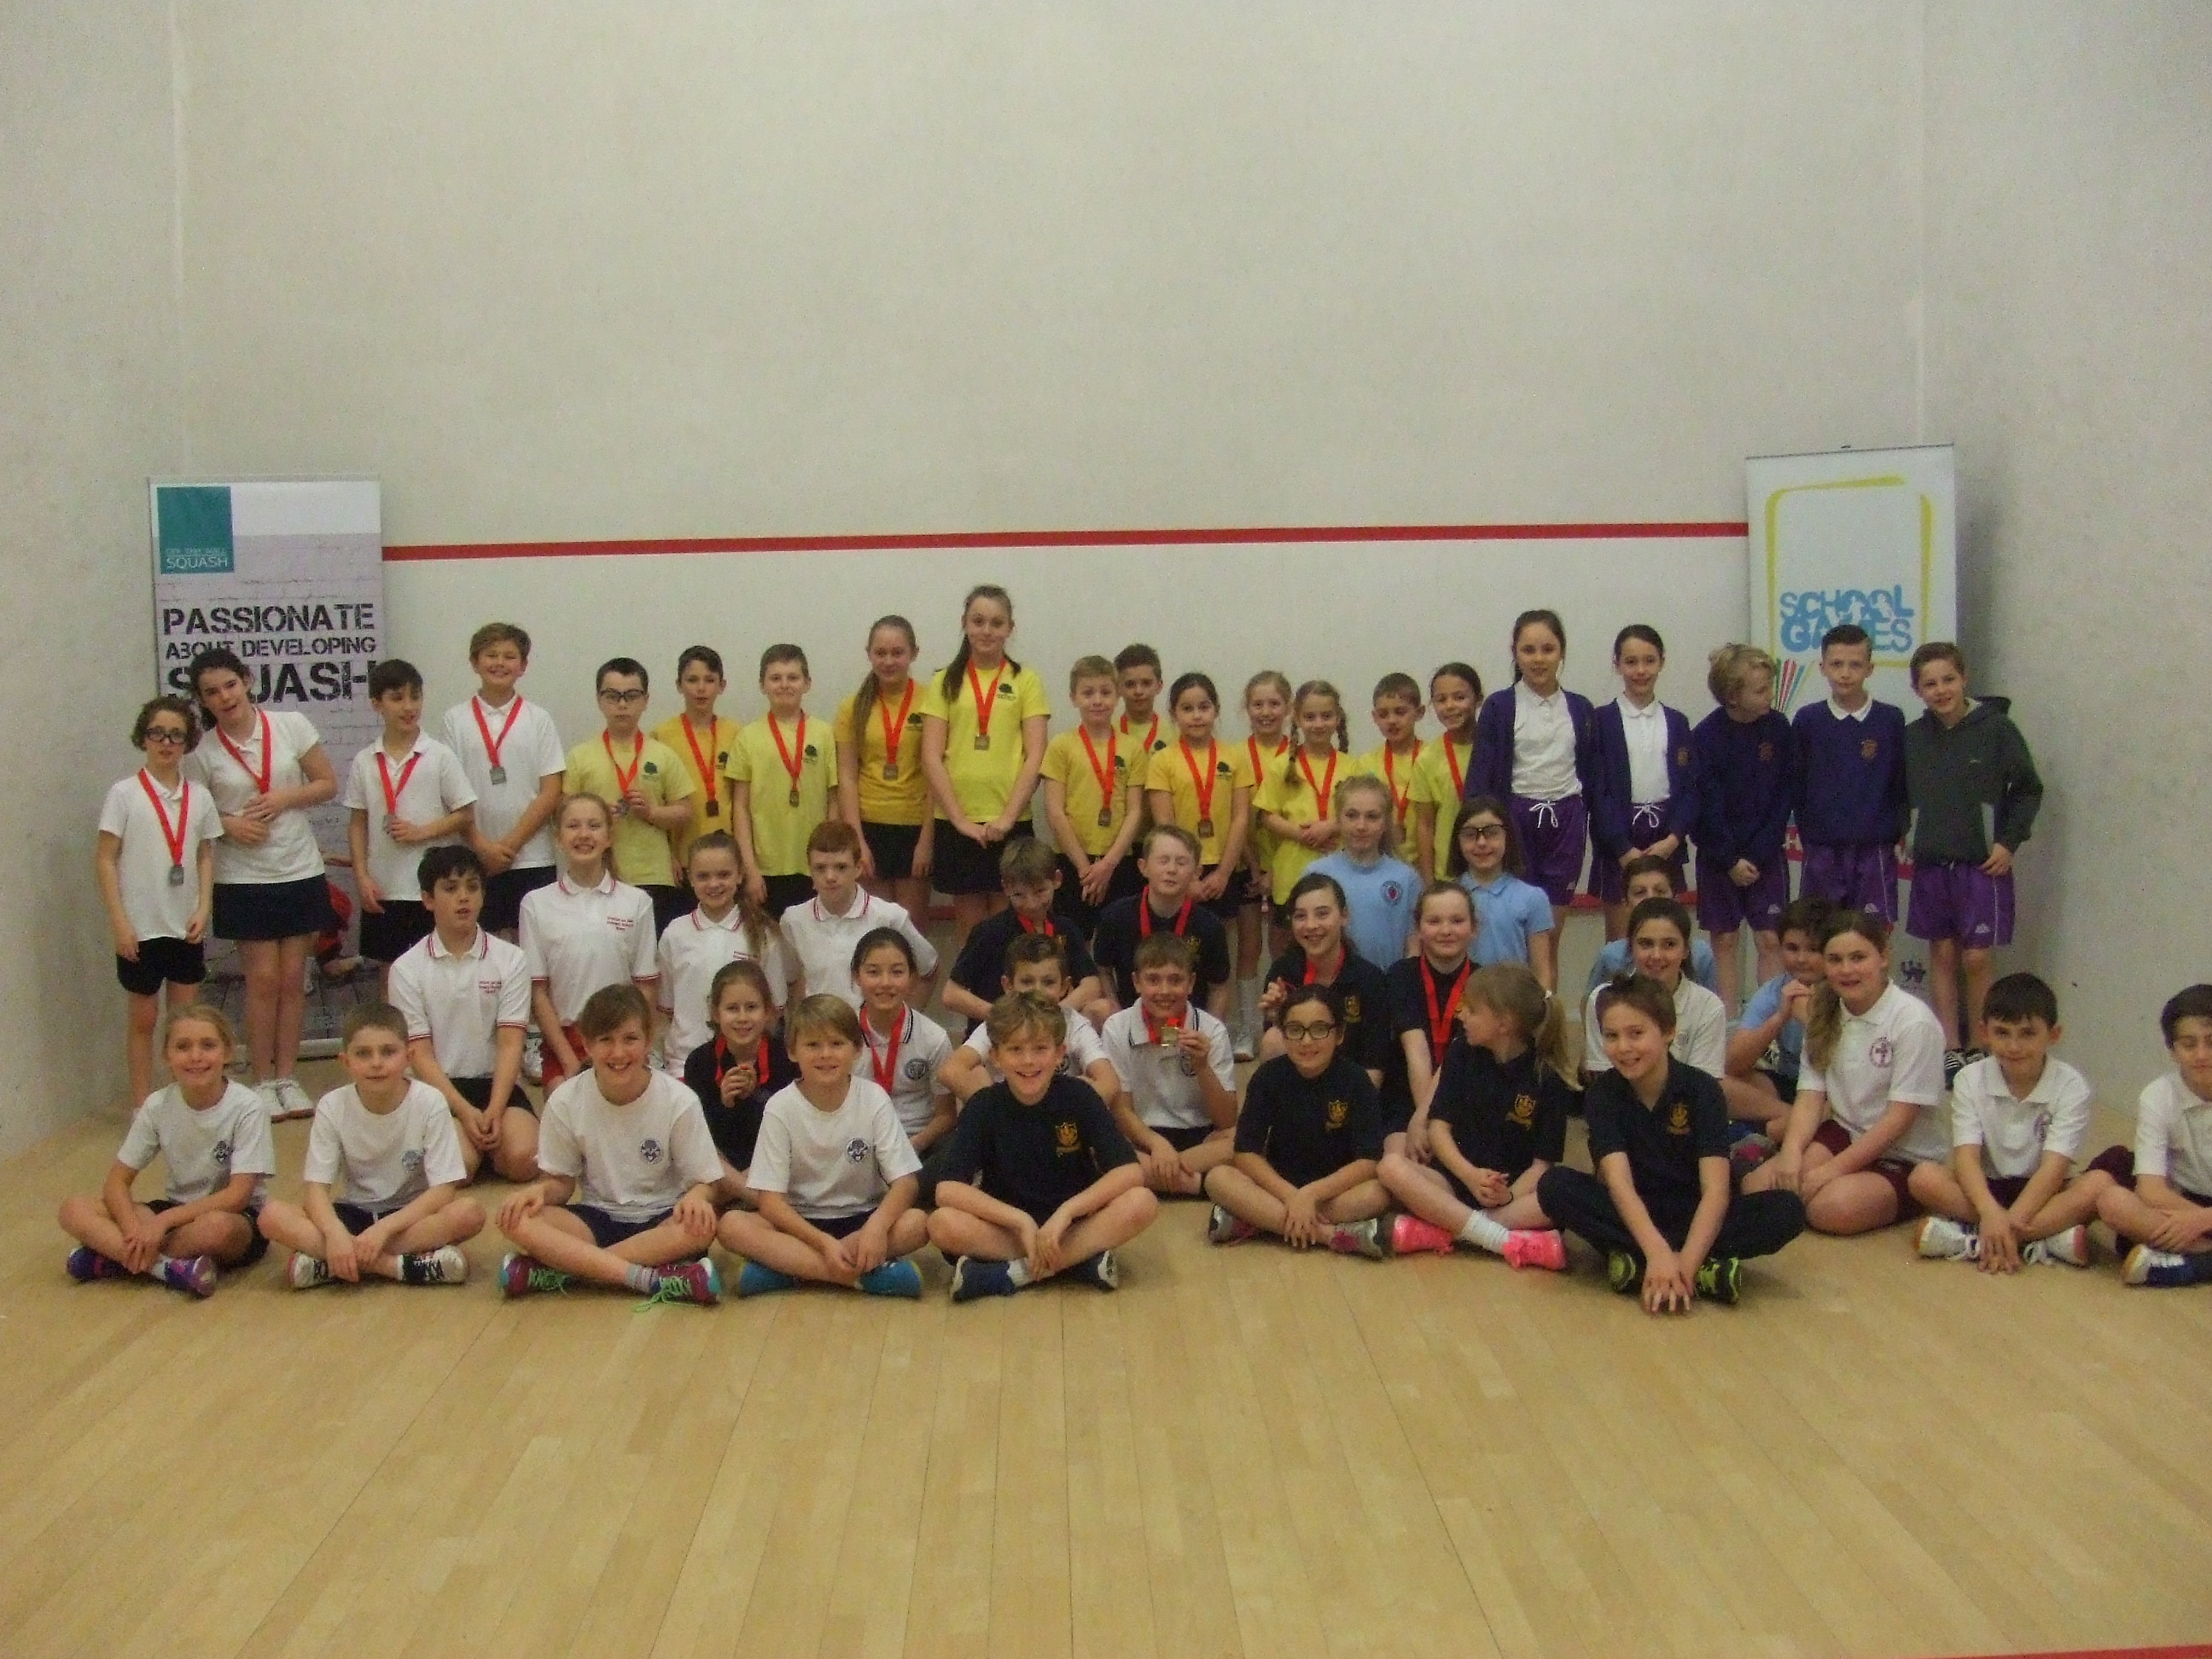 Sports Minister praises inclusion of squash in Essex Games